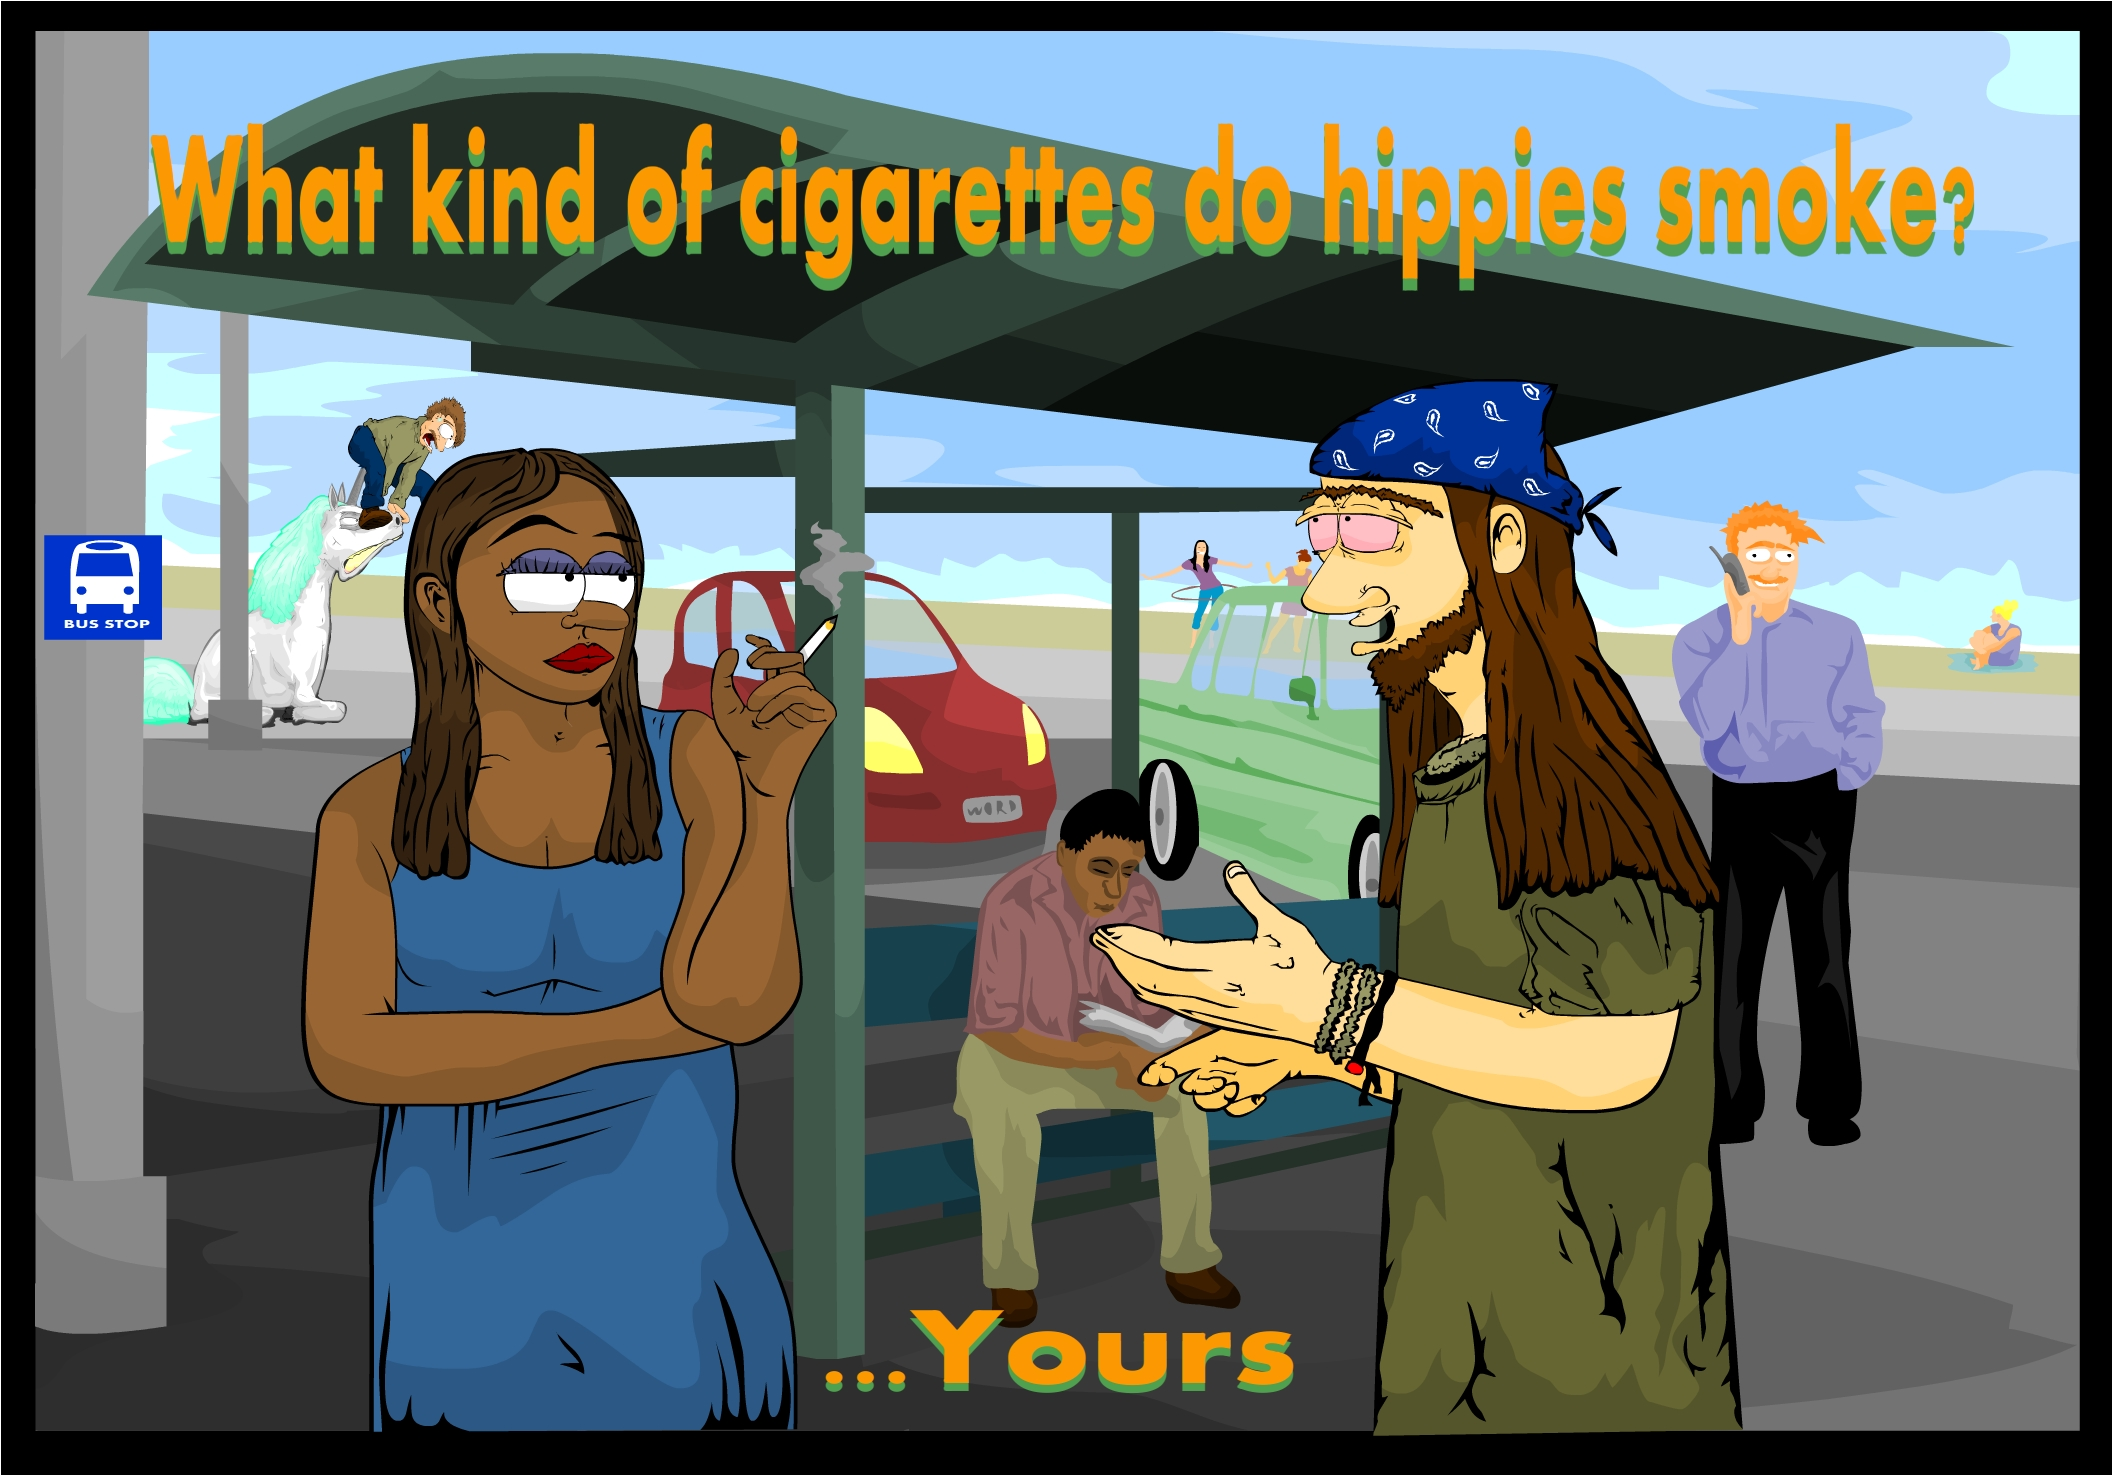 What kind of cigs do hippies smoke?